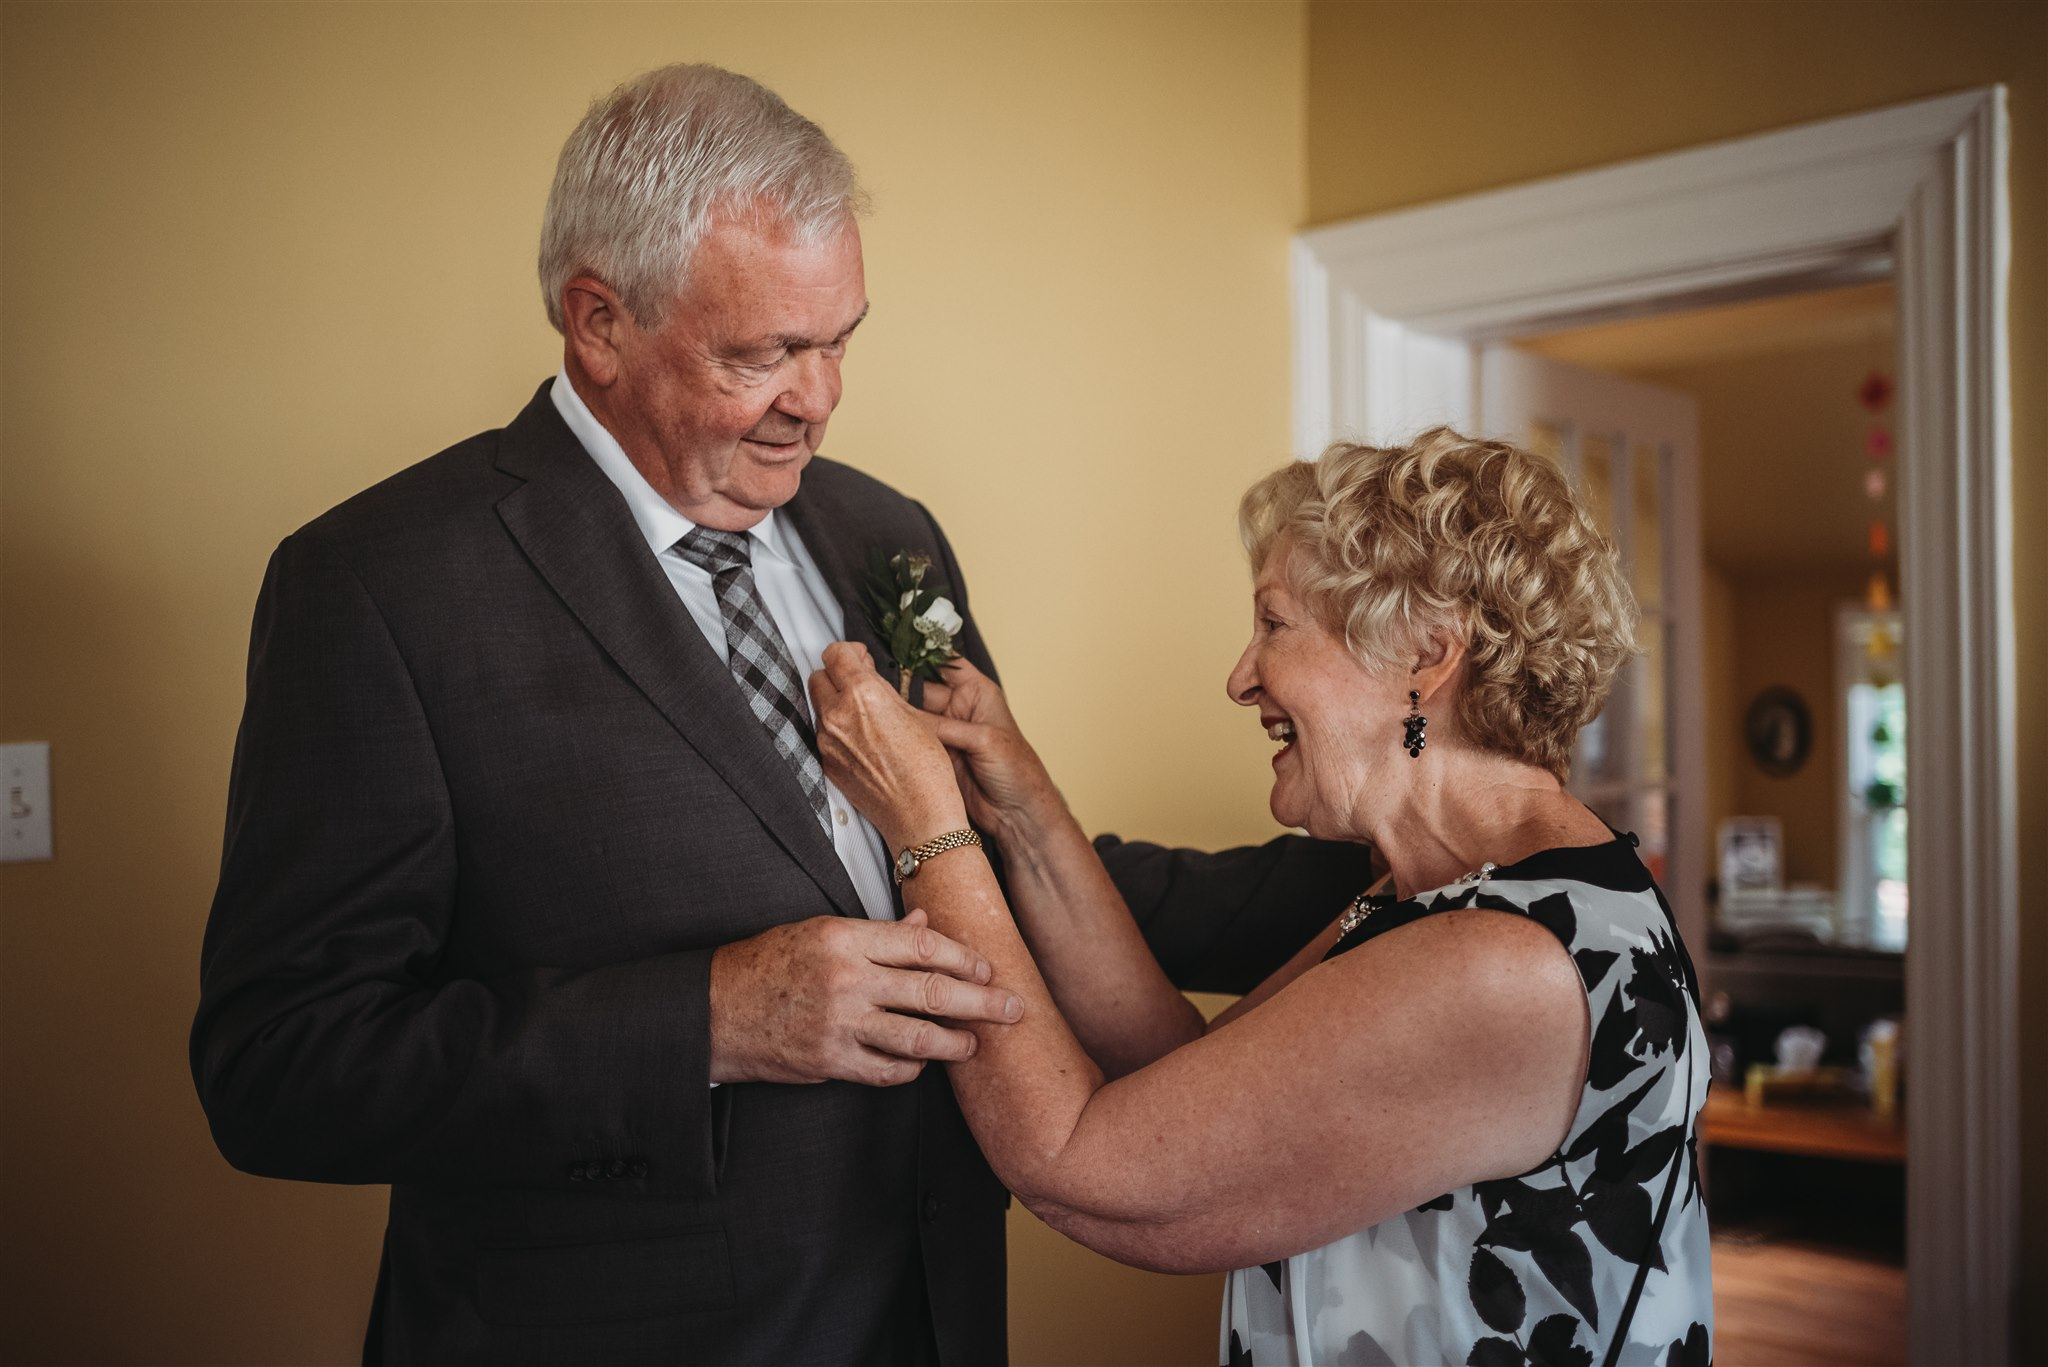 brides mom and dad putting boutonniere on